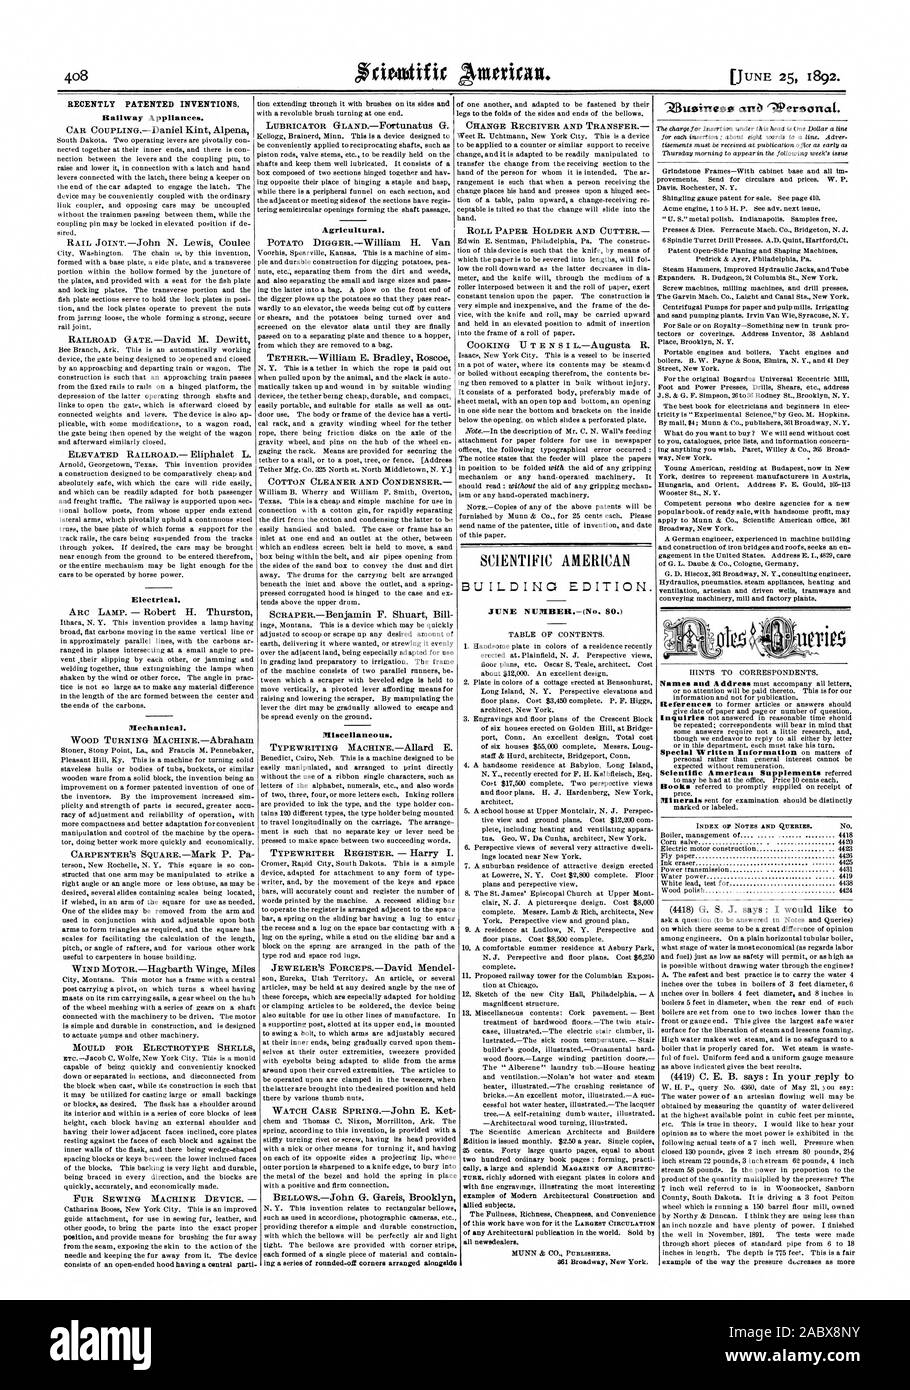 RECENTLY PATENTED INVENTIONS. Railway Appliances. Agricultural. JUNE NUMBER(No. 80.) allied subjects. The Fullness Richness Cheapness and Convenience of any Architectural publication in the world. Sold bj all newsdealer's. MUNN A CO. PUBLISHERS. 'Z3usinese arta ^OPersonat. [Mechanical. WOOD TURNING MACHINEAbraham Miscellaneous., scientific american, 1892-06-25 Stock Photo